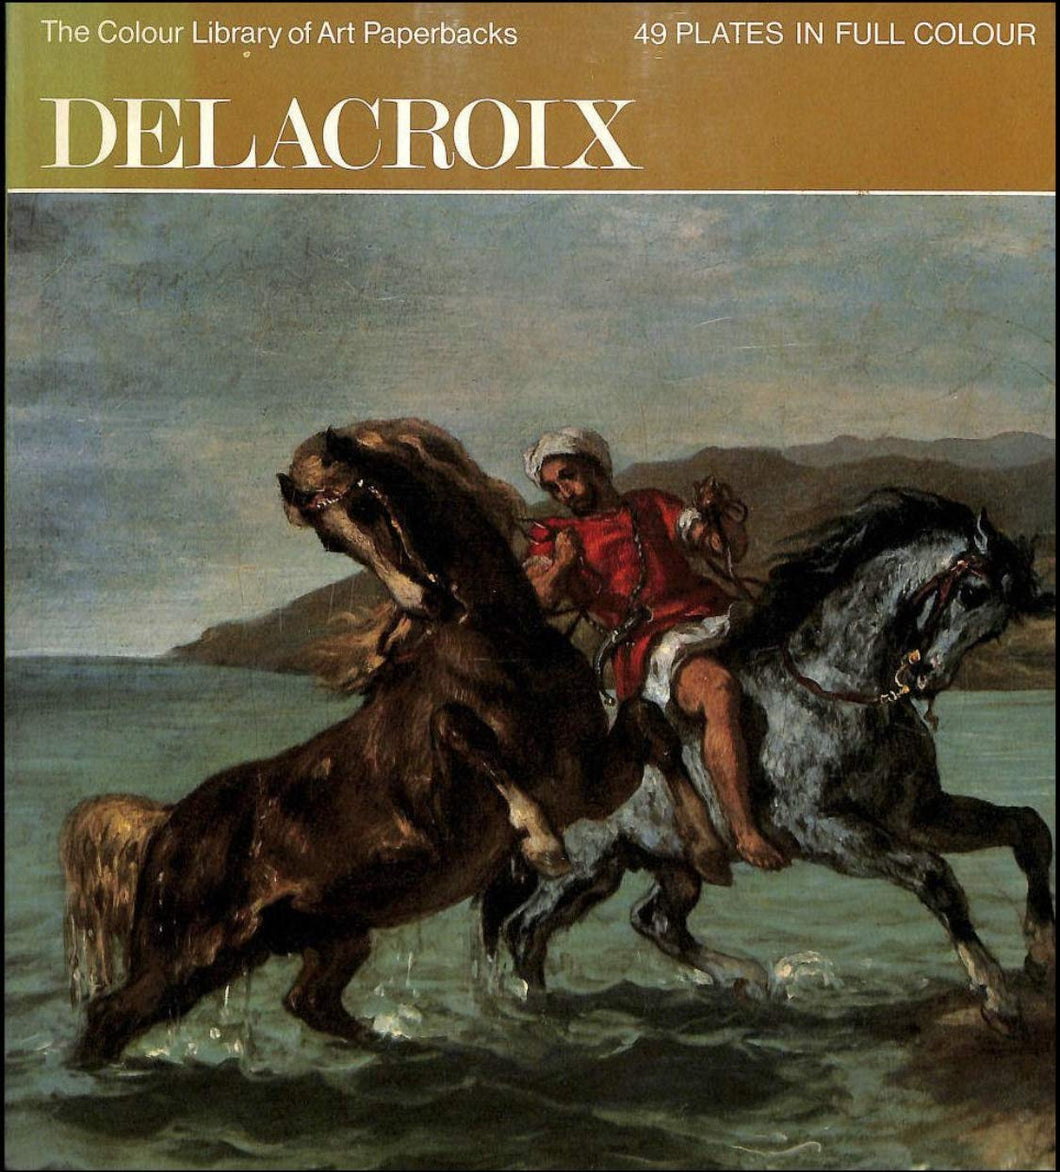 The Colour Library Of Art; Delacroix, 49 Plates In Full Colour [Hardcover] Phoebe Pool